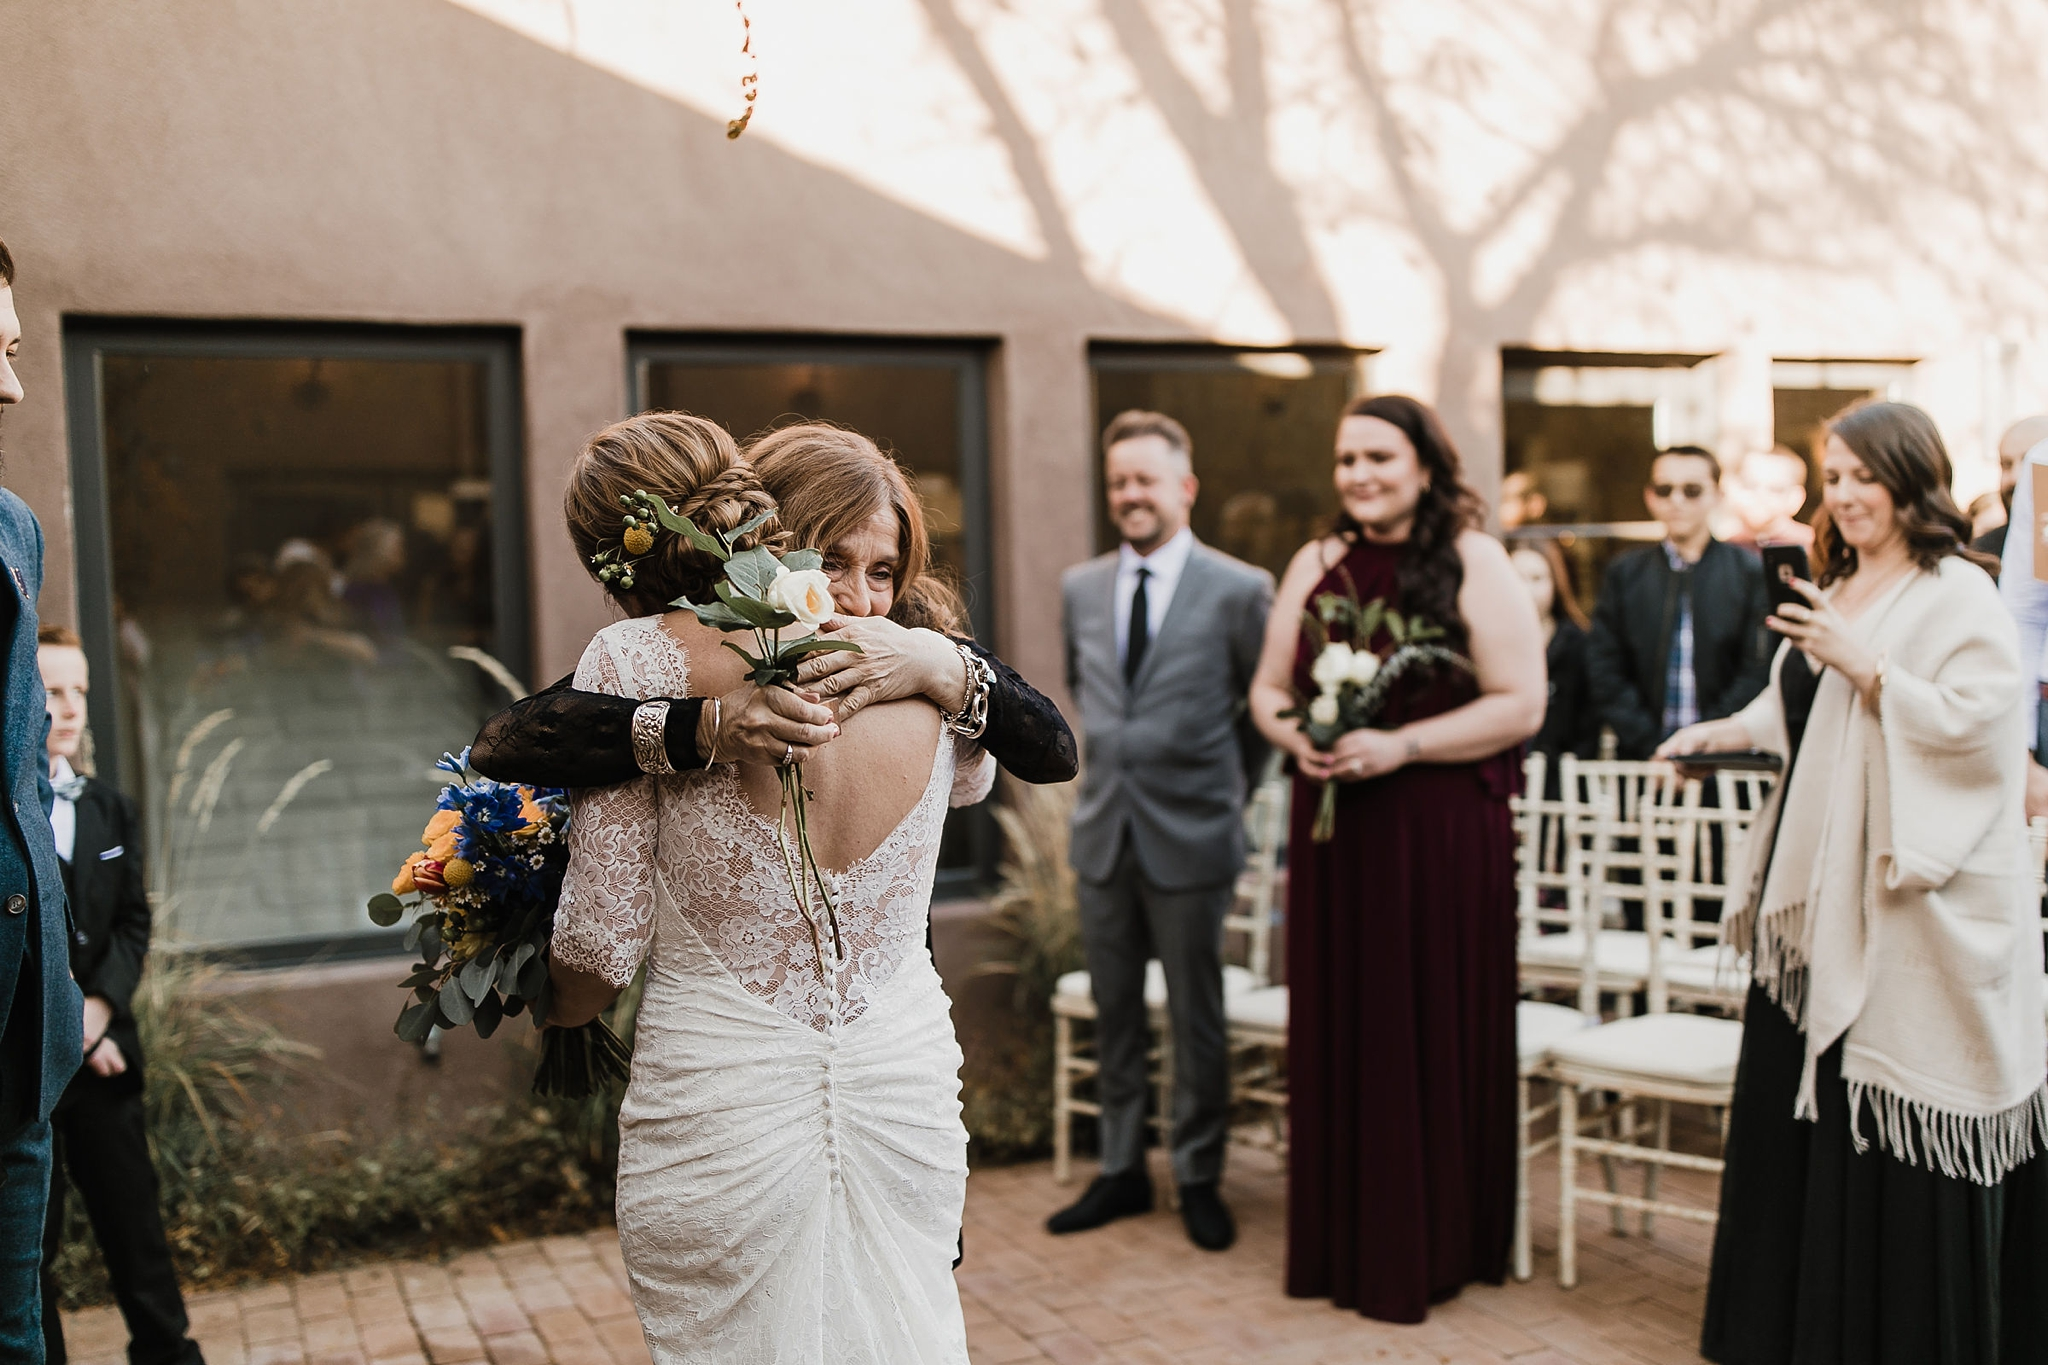 Alicia+lucia+photography+-+albuquerque+wedding+photographer+-+santa+fe+wedding+photography+-+new+mexico+wedding+photographer+-+albuquerque+wedding+-+sarabande+bed+breakfast+-+bed+and+breakfast+wedding_0048.jpg